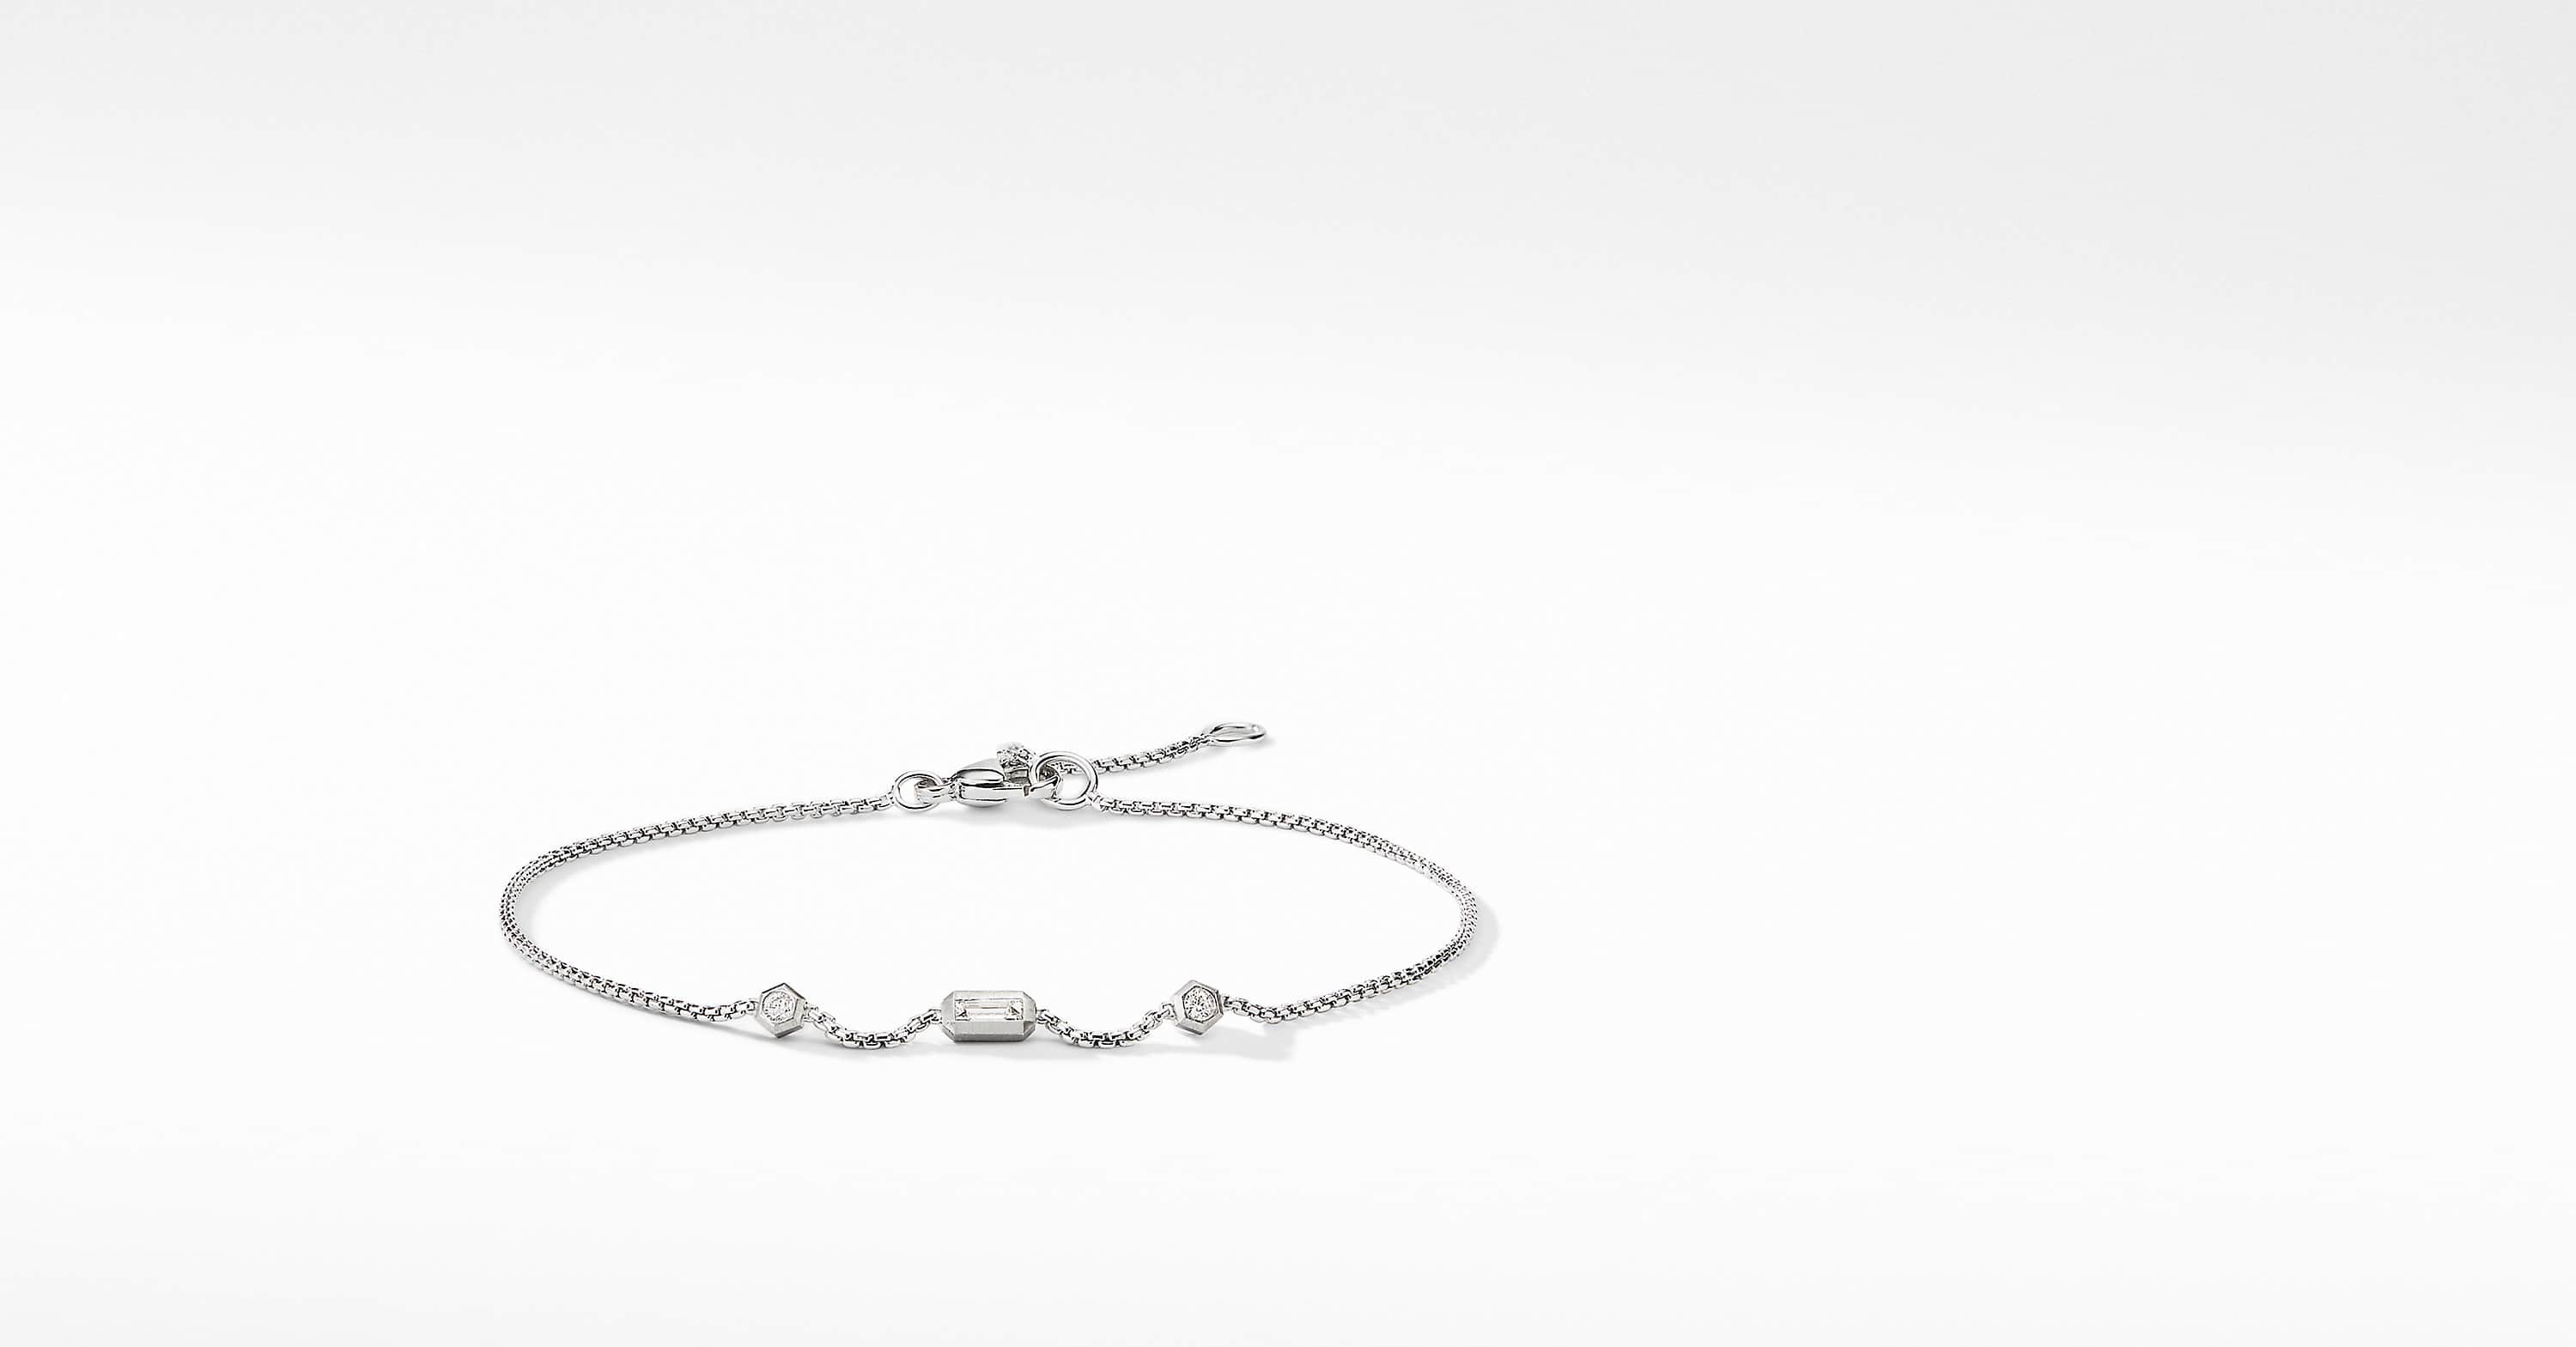 Novella Chain Bracelet with Diamonds in 18K White Gold